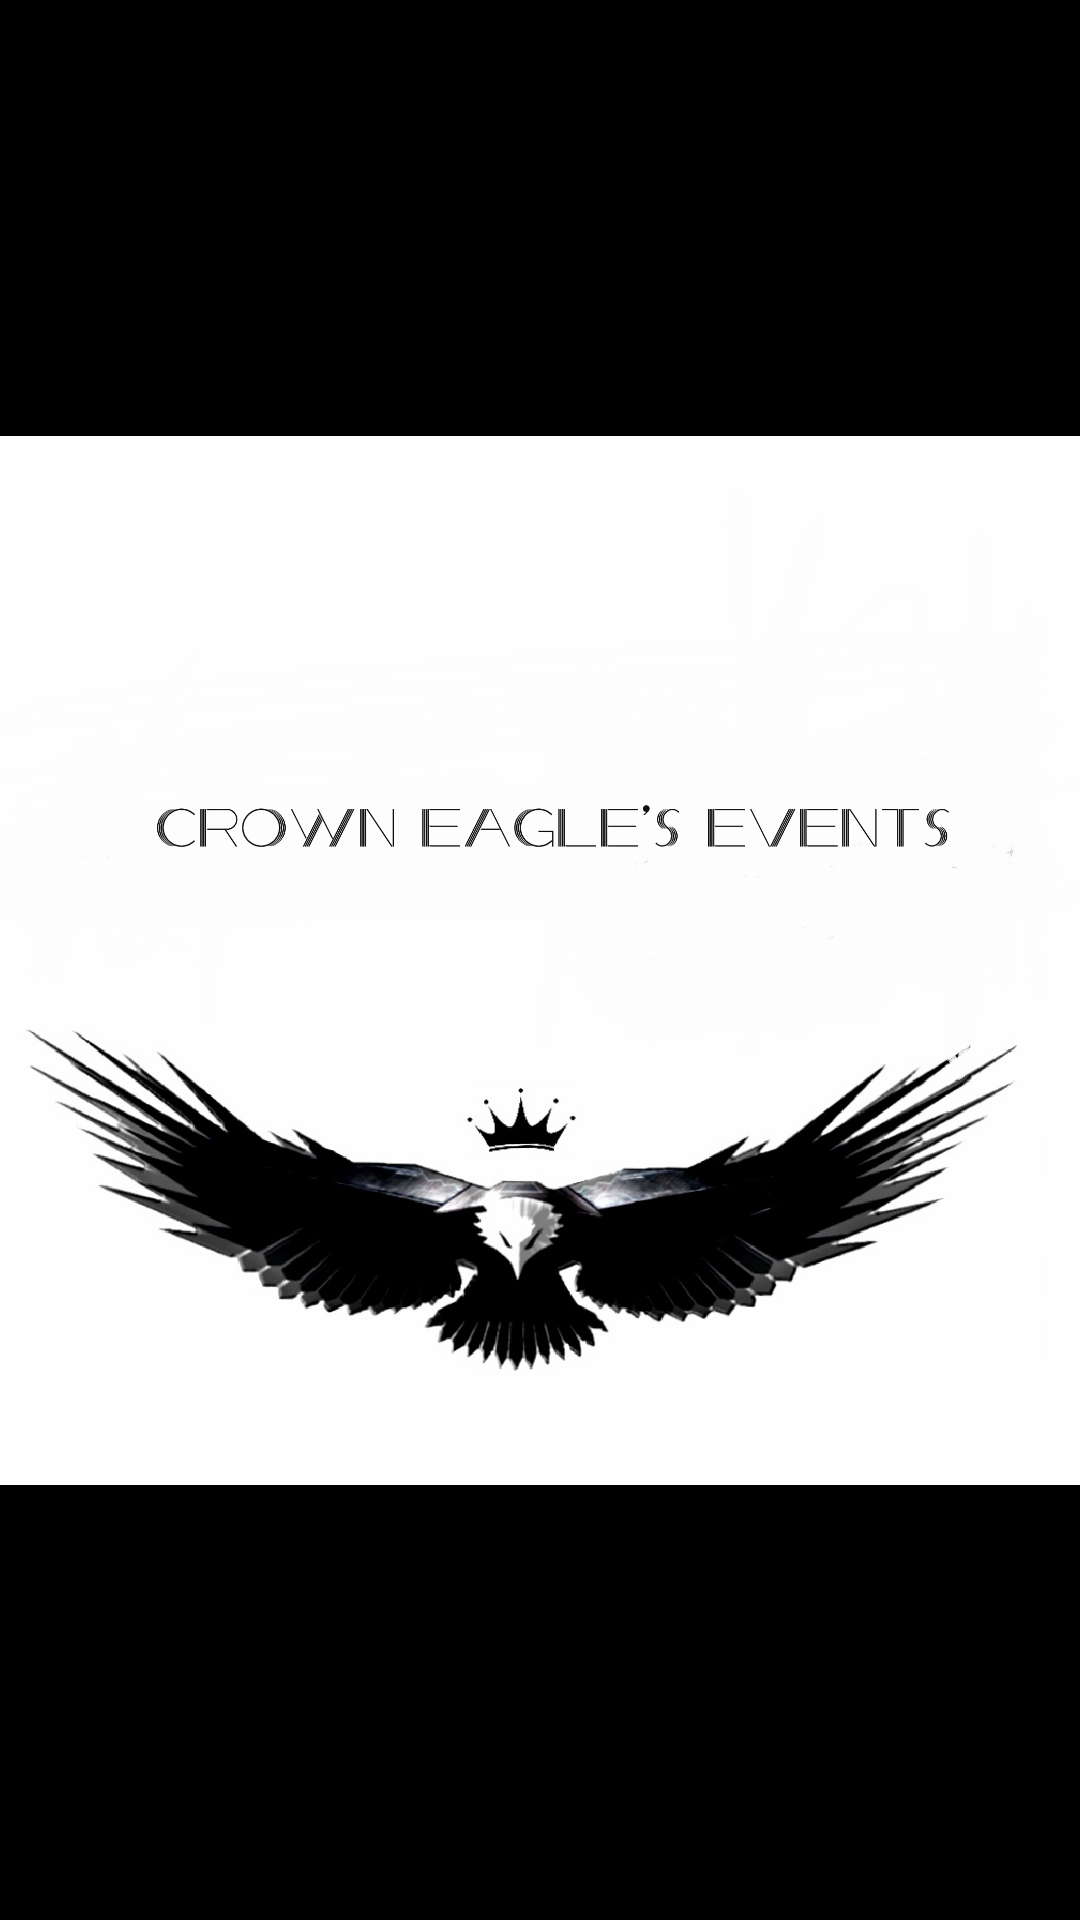 Crown Eagle's Events